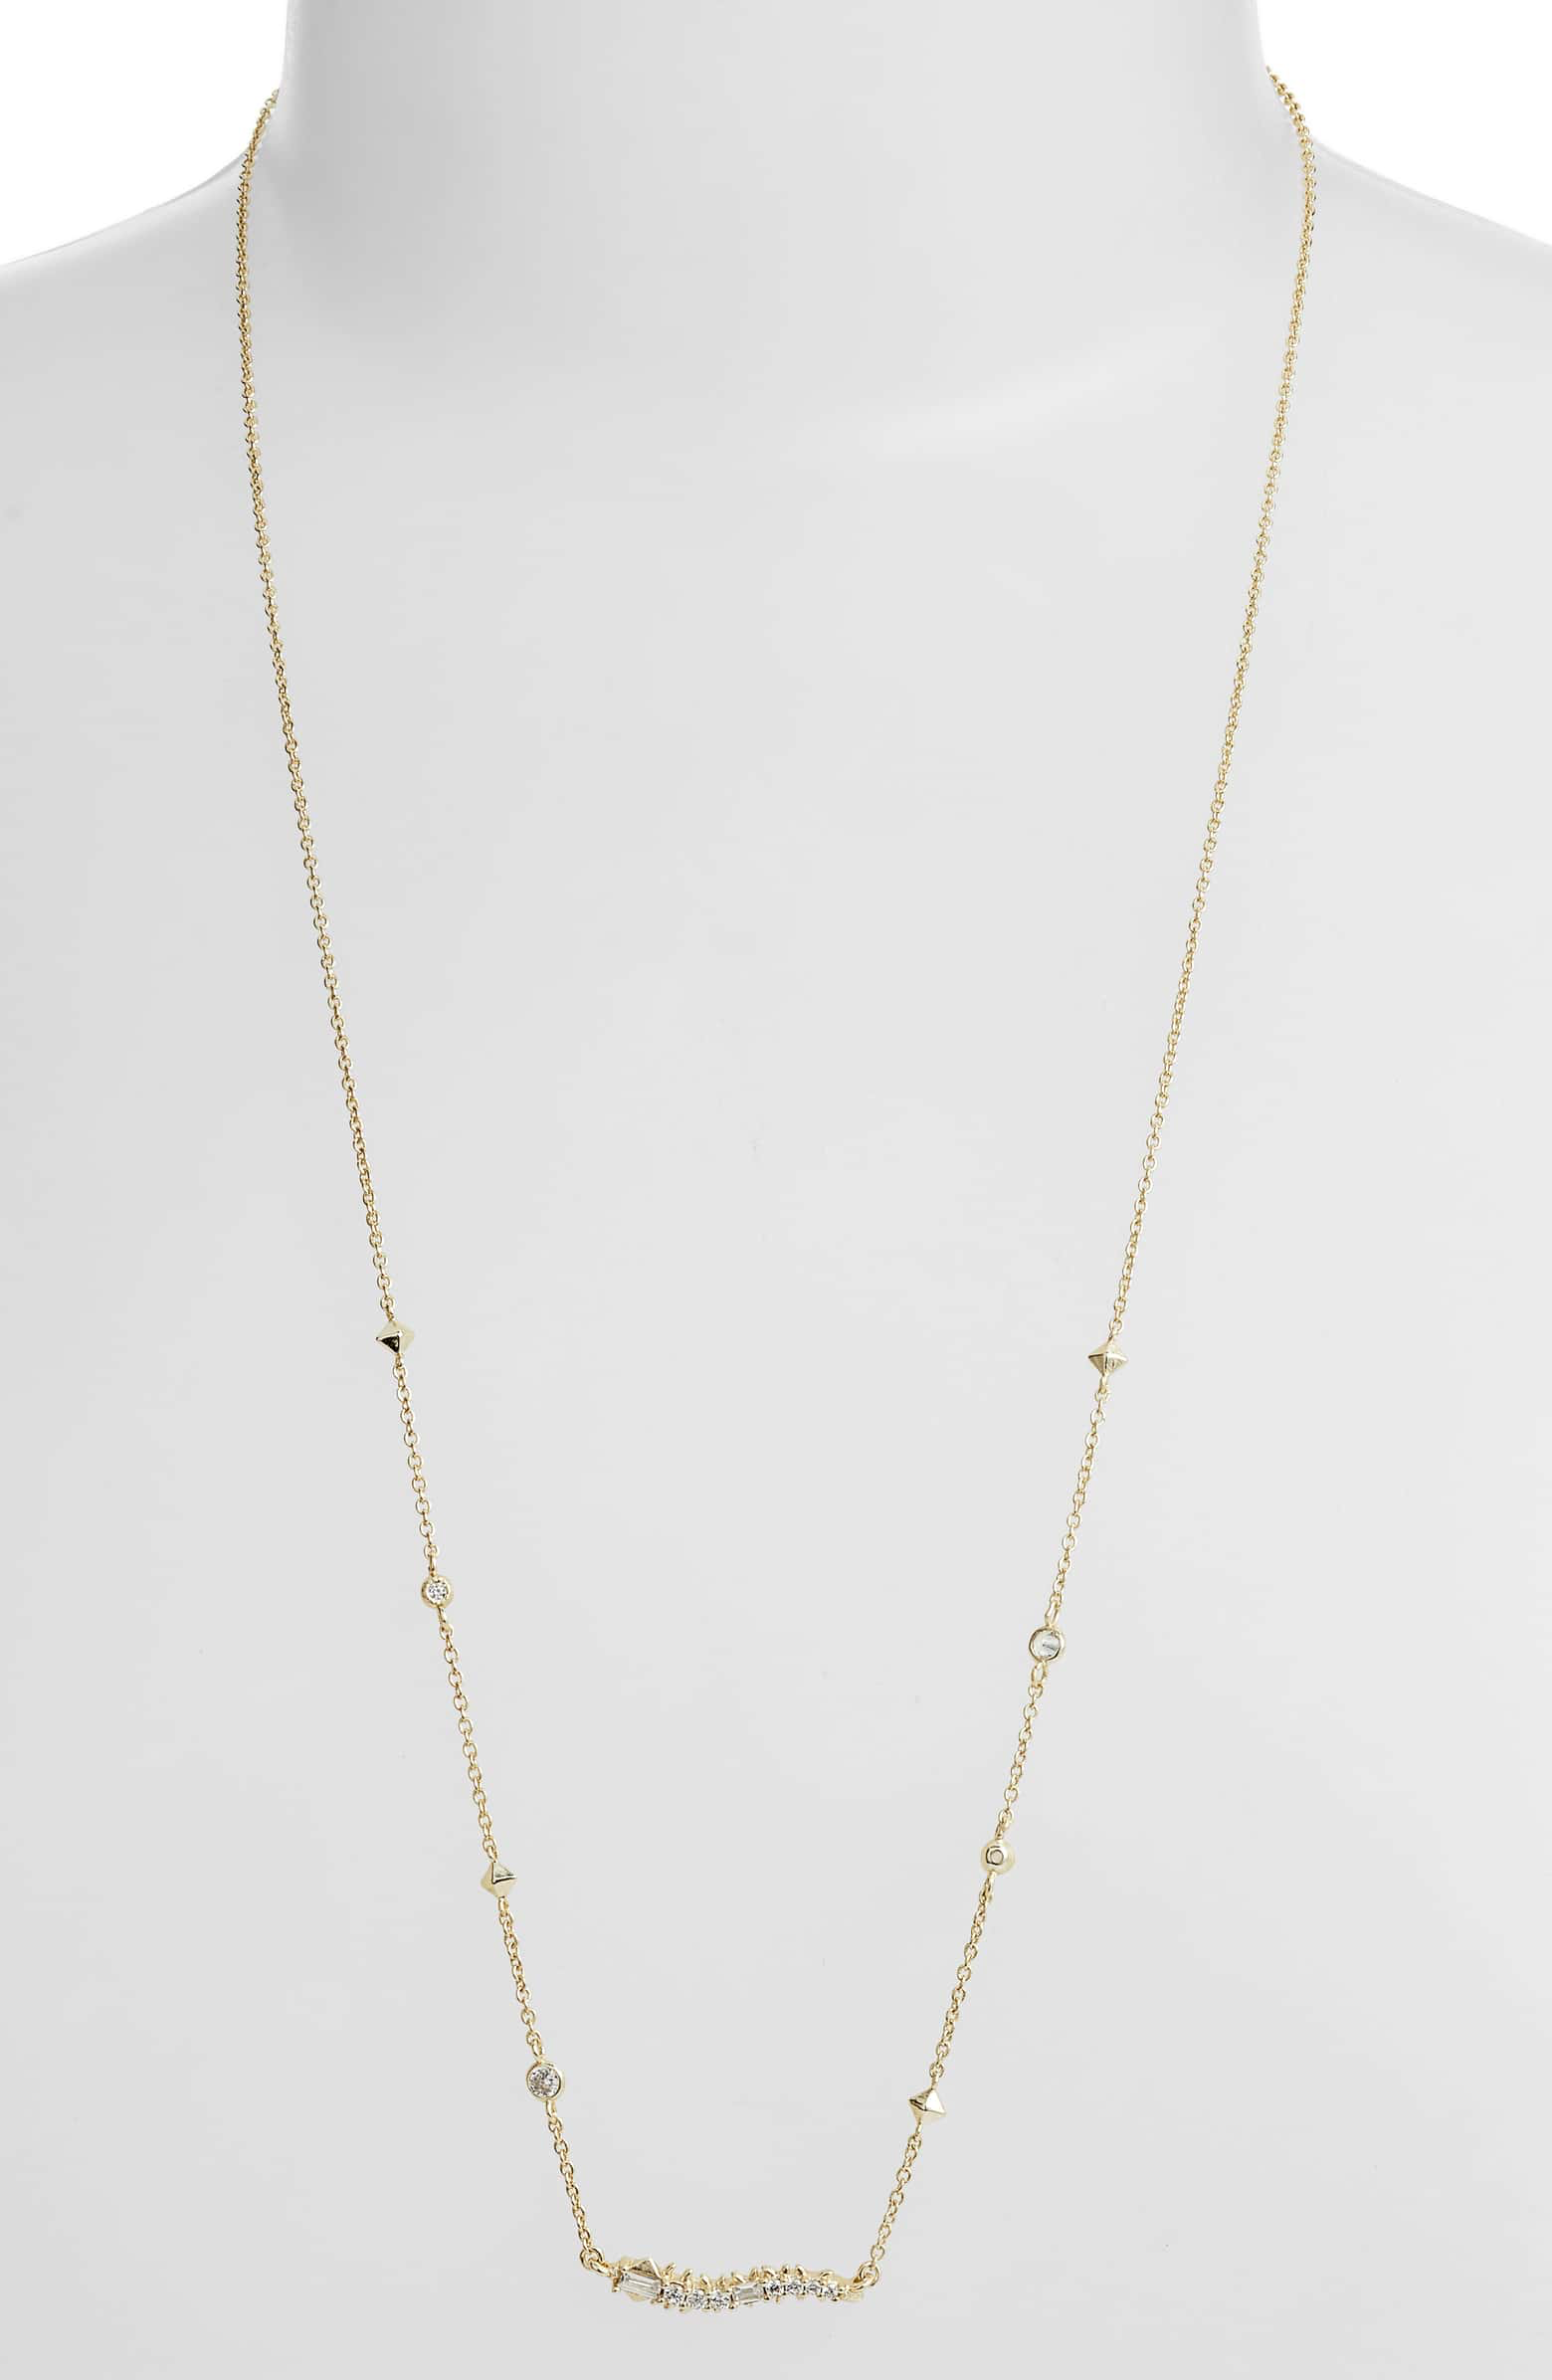 6. NECKLACE - Last but not least…accessories!Click here $52.99 (sale price)